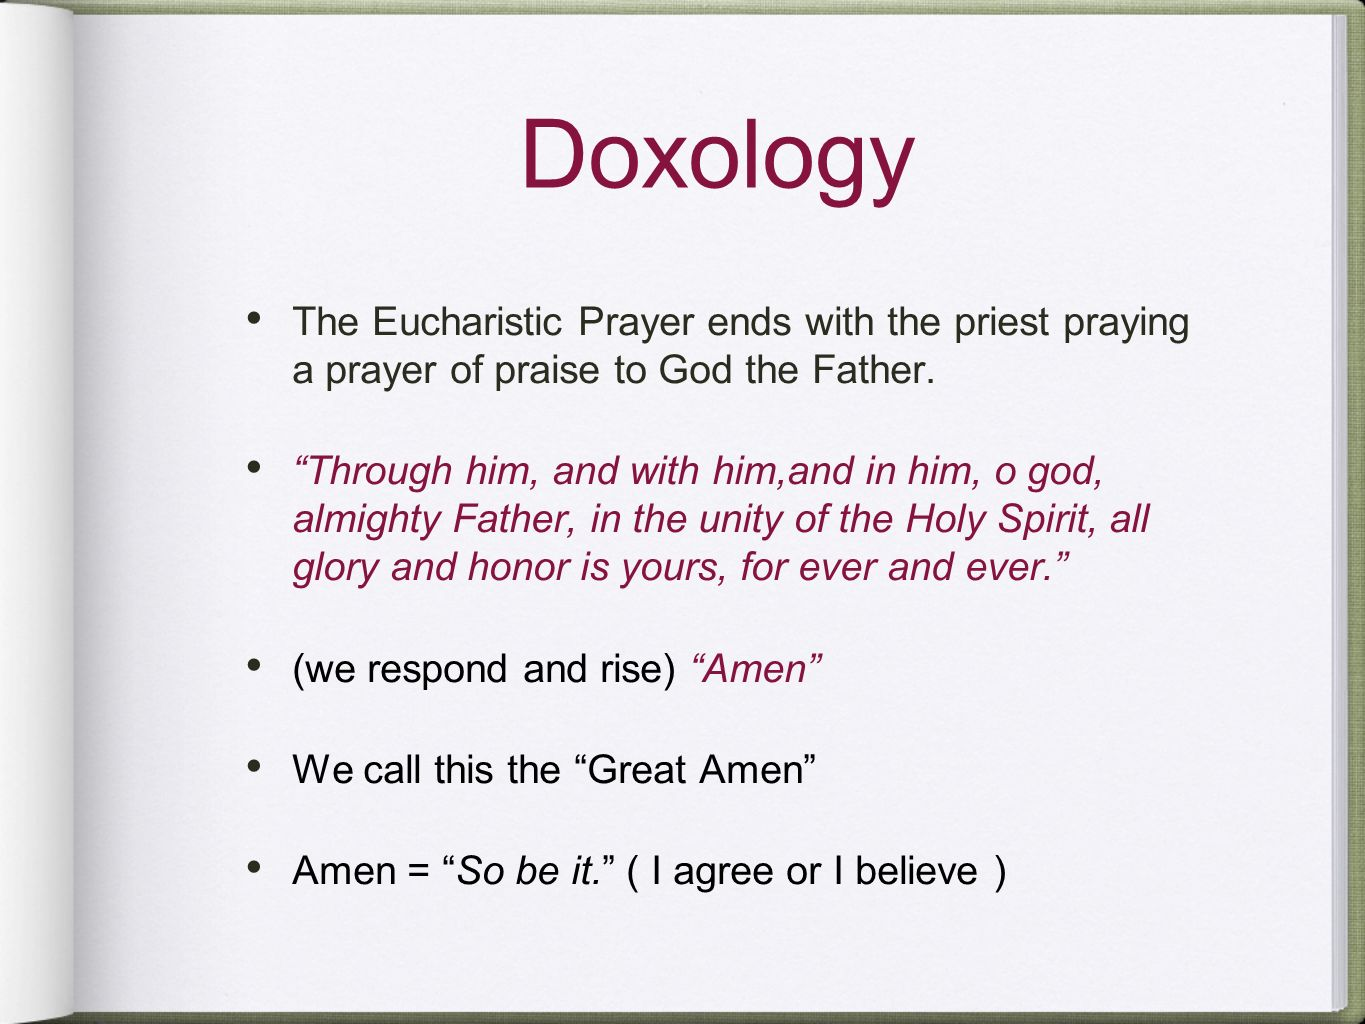 Doxology The Eucharistic Prayer ends with the priest praying a prayer of praise to God the Father.